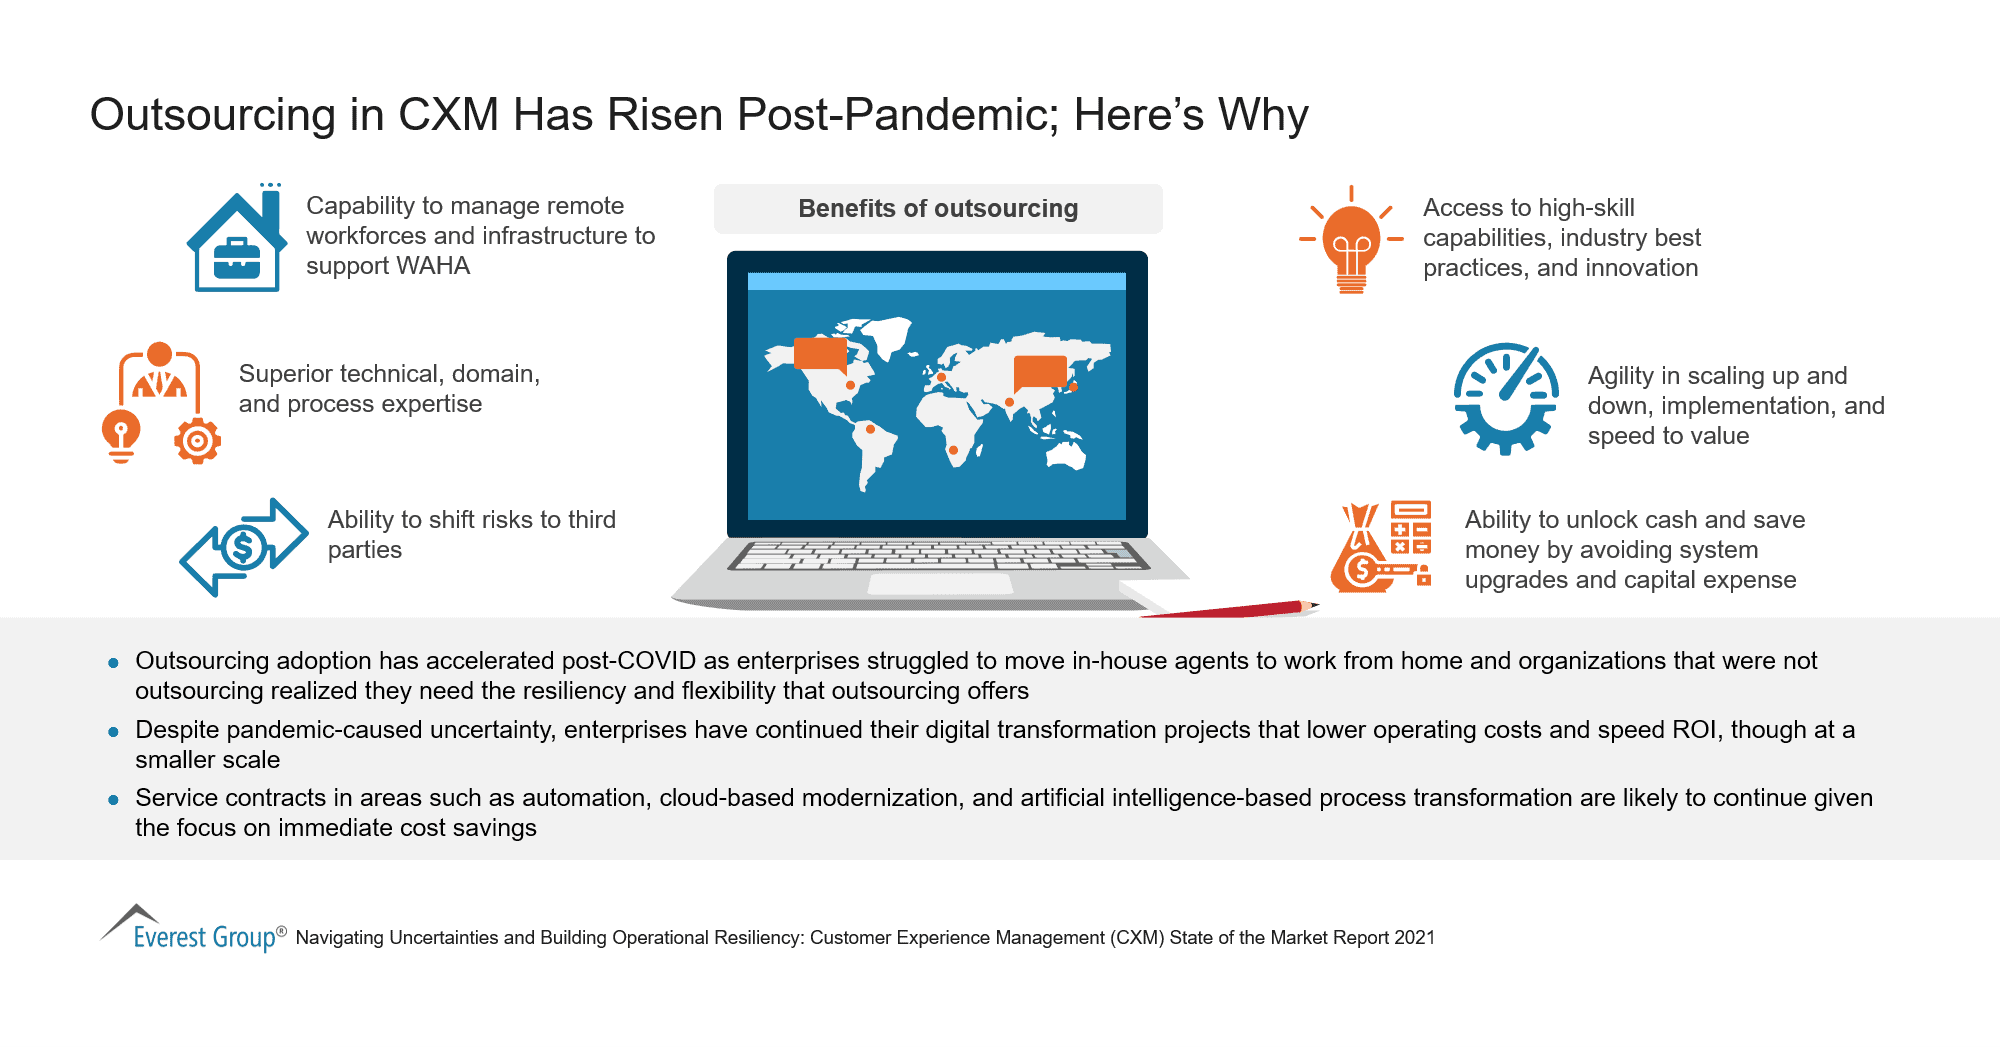 Outsourcing in CXM Has Risen Post-Pandemic - Here's Why